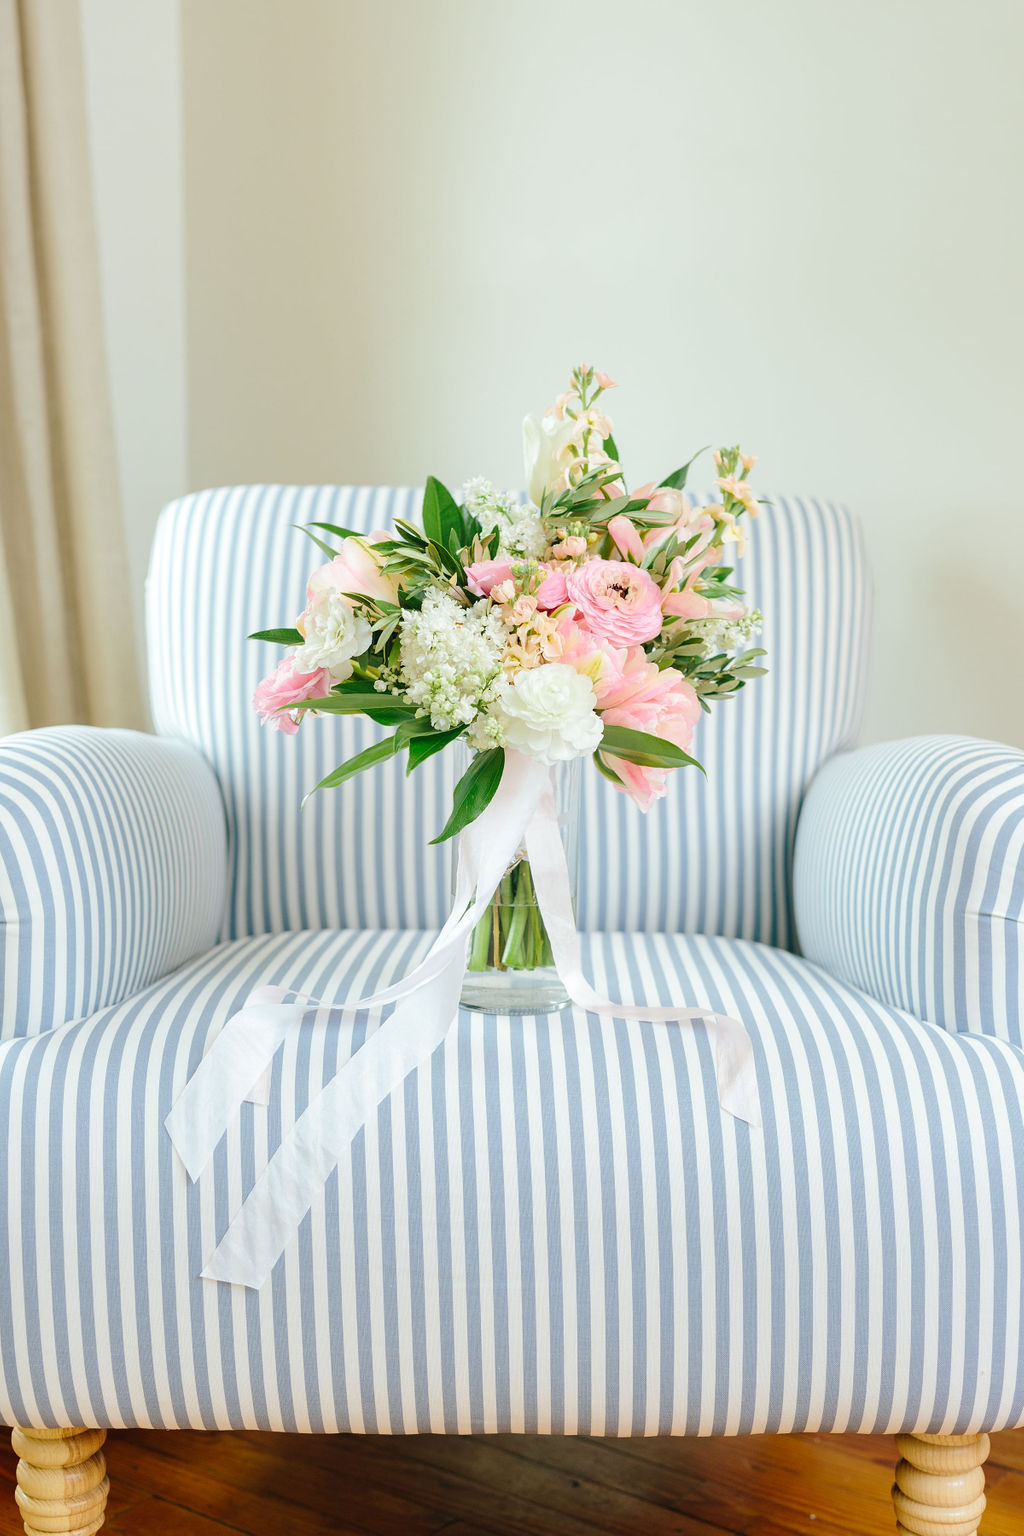 Bouquet with ranunculus and ribbon on striped chair - Preppy spring wedding at Zingerman's Cornman Farms - Leah E. Moss Designs - photo by Katie Grace Photography